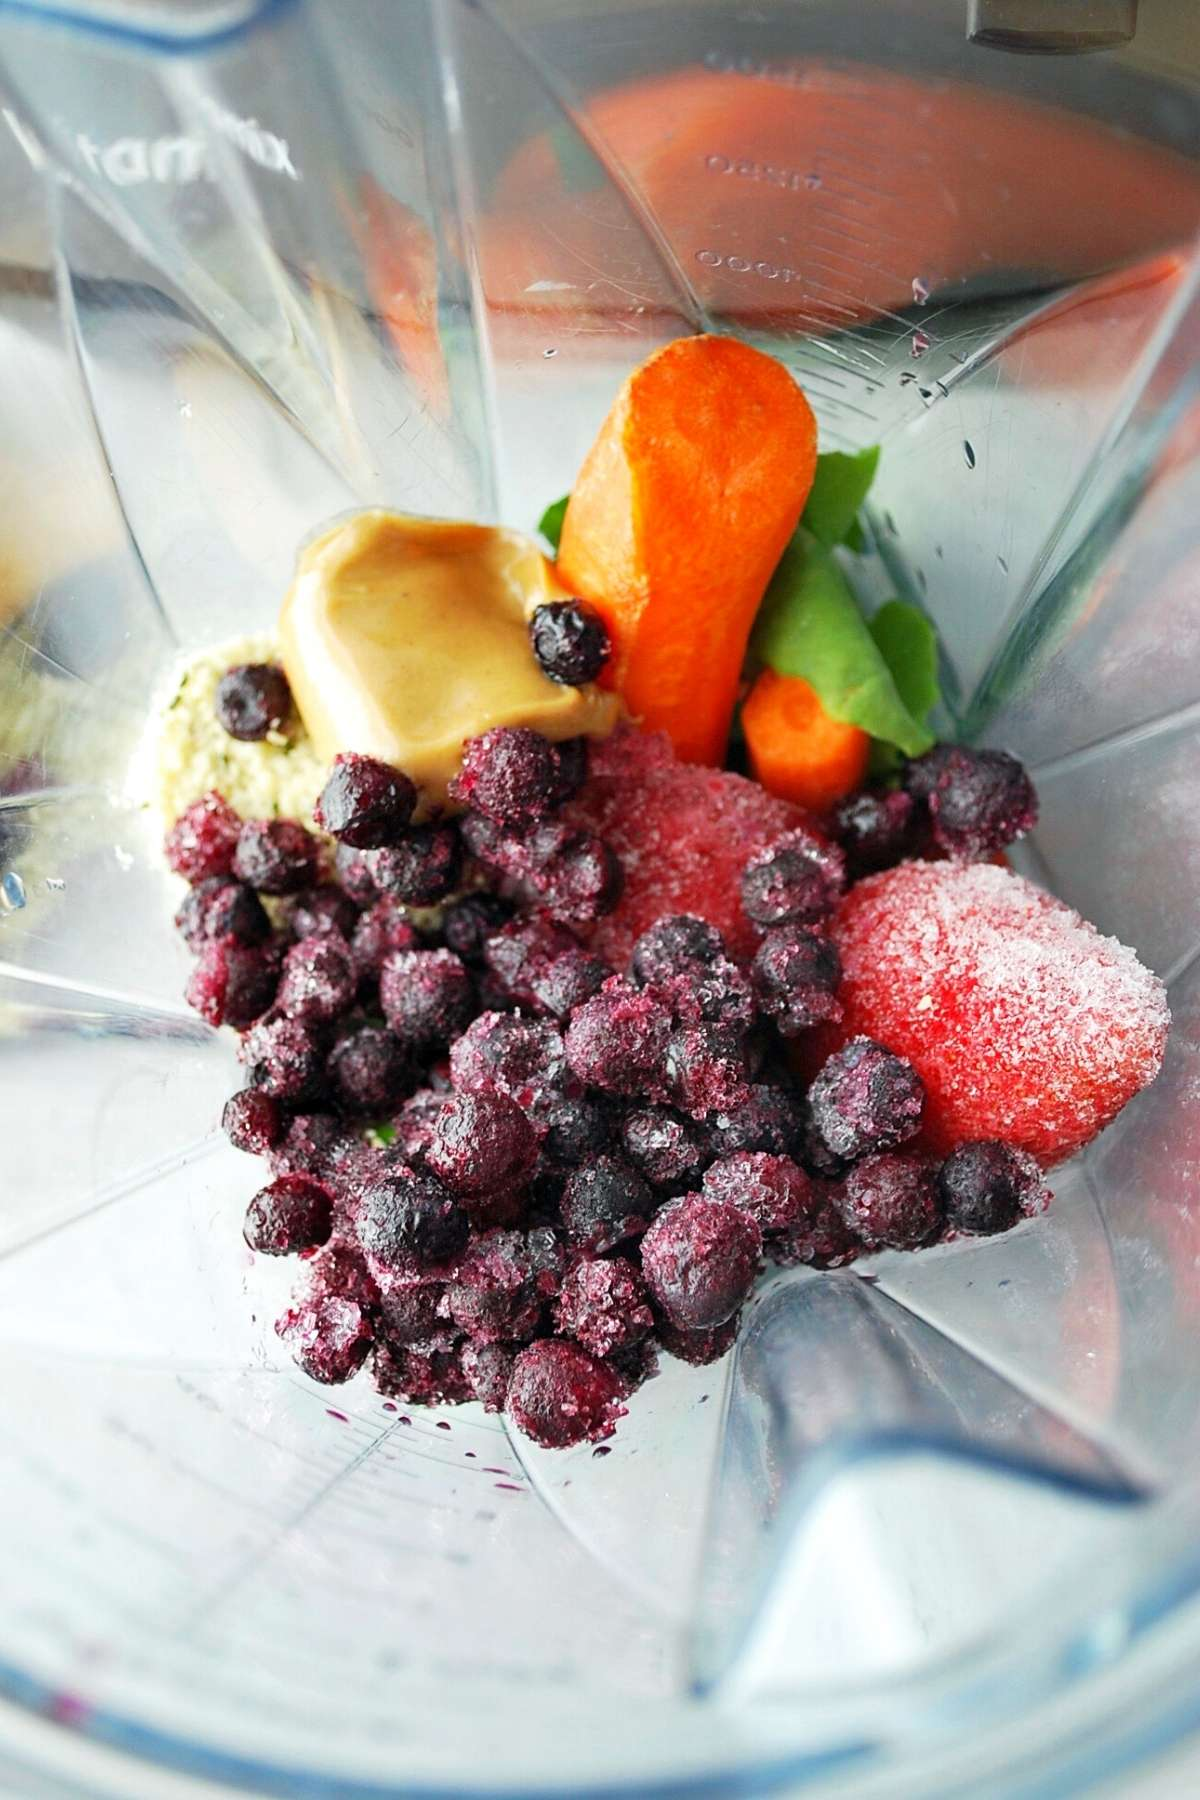 smoothie ingredients in a blender container